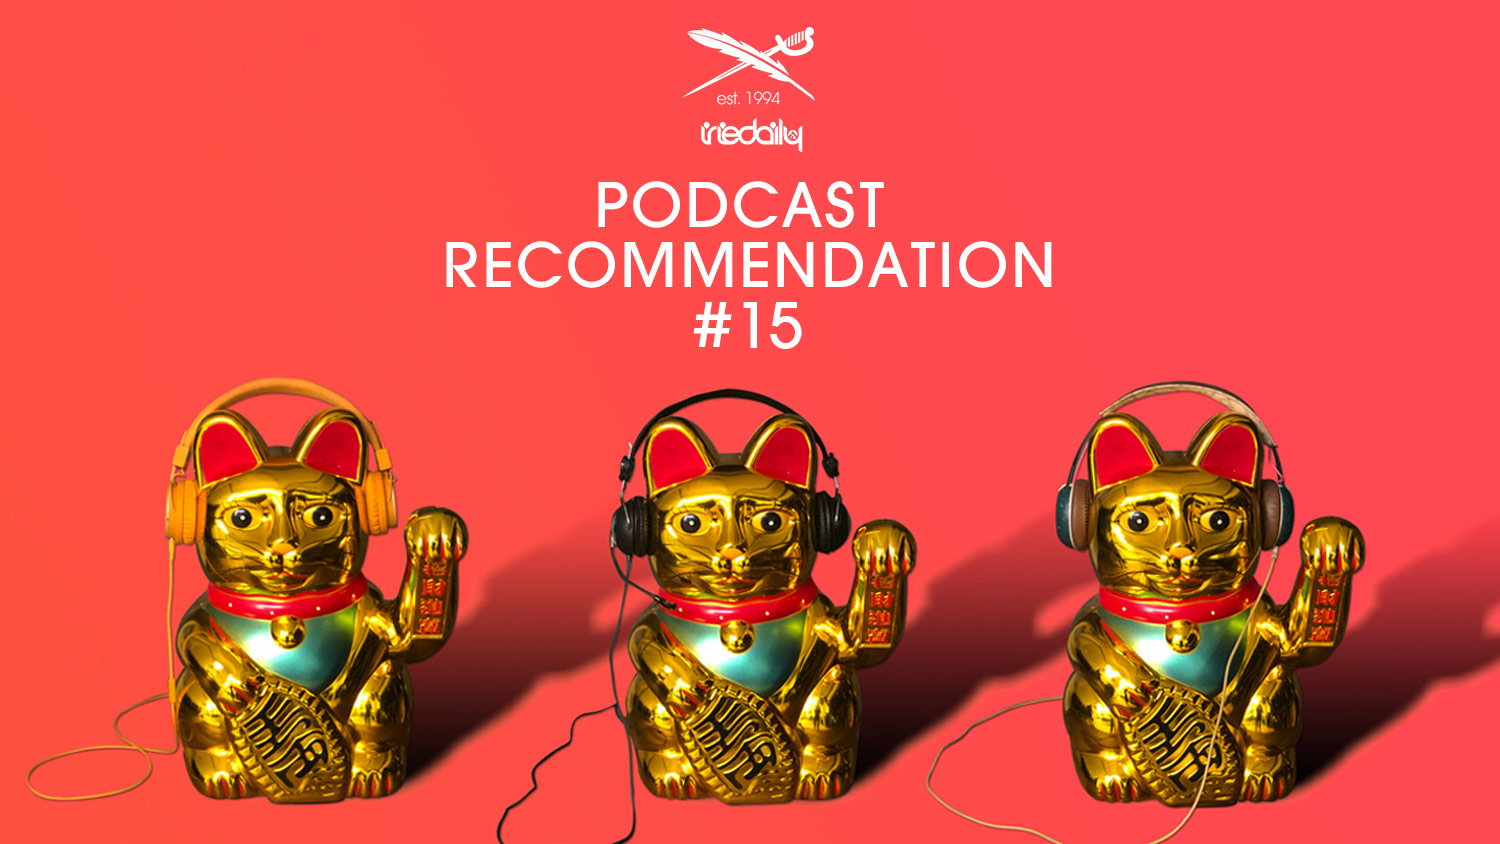 IRIEDAILY Podcast Recommendation #15